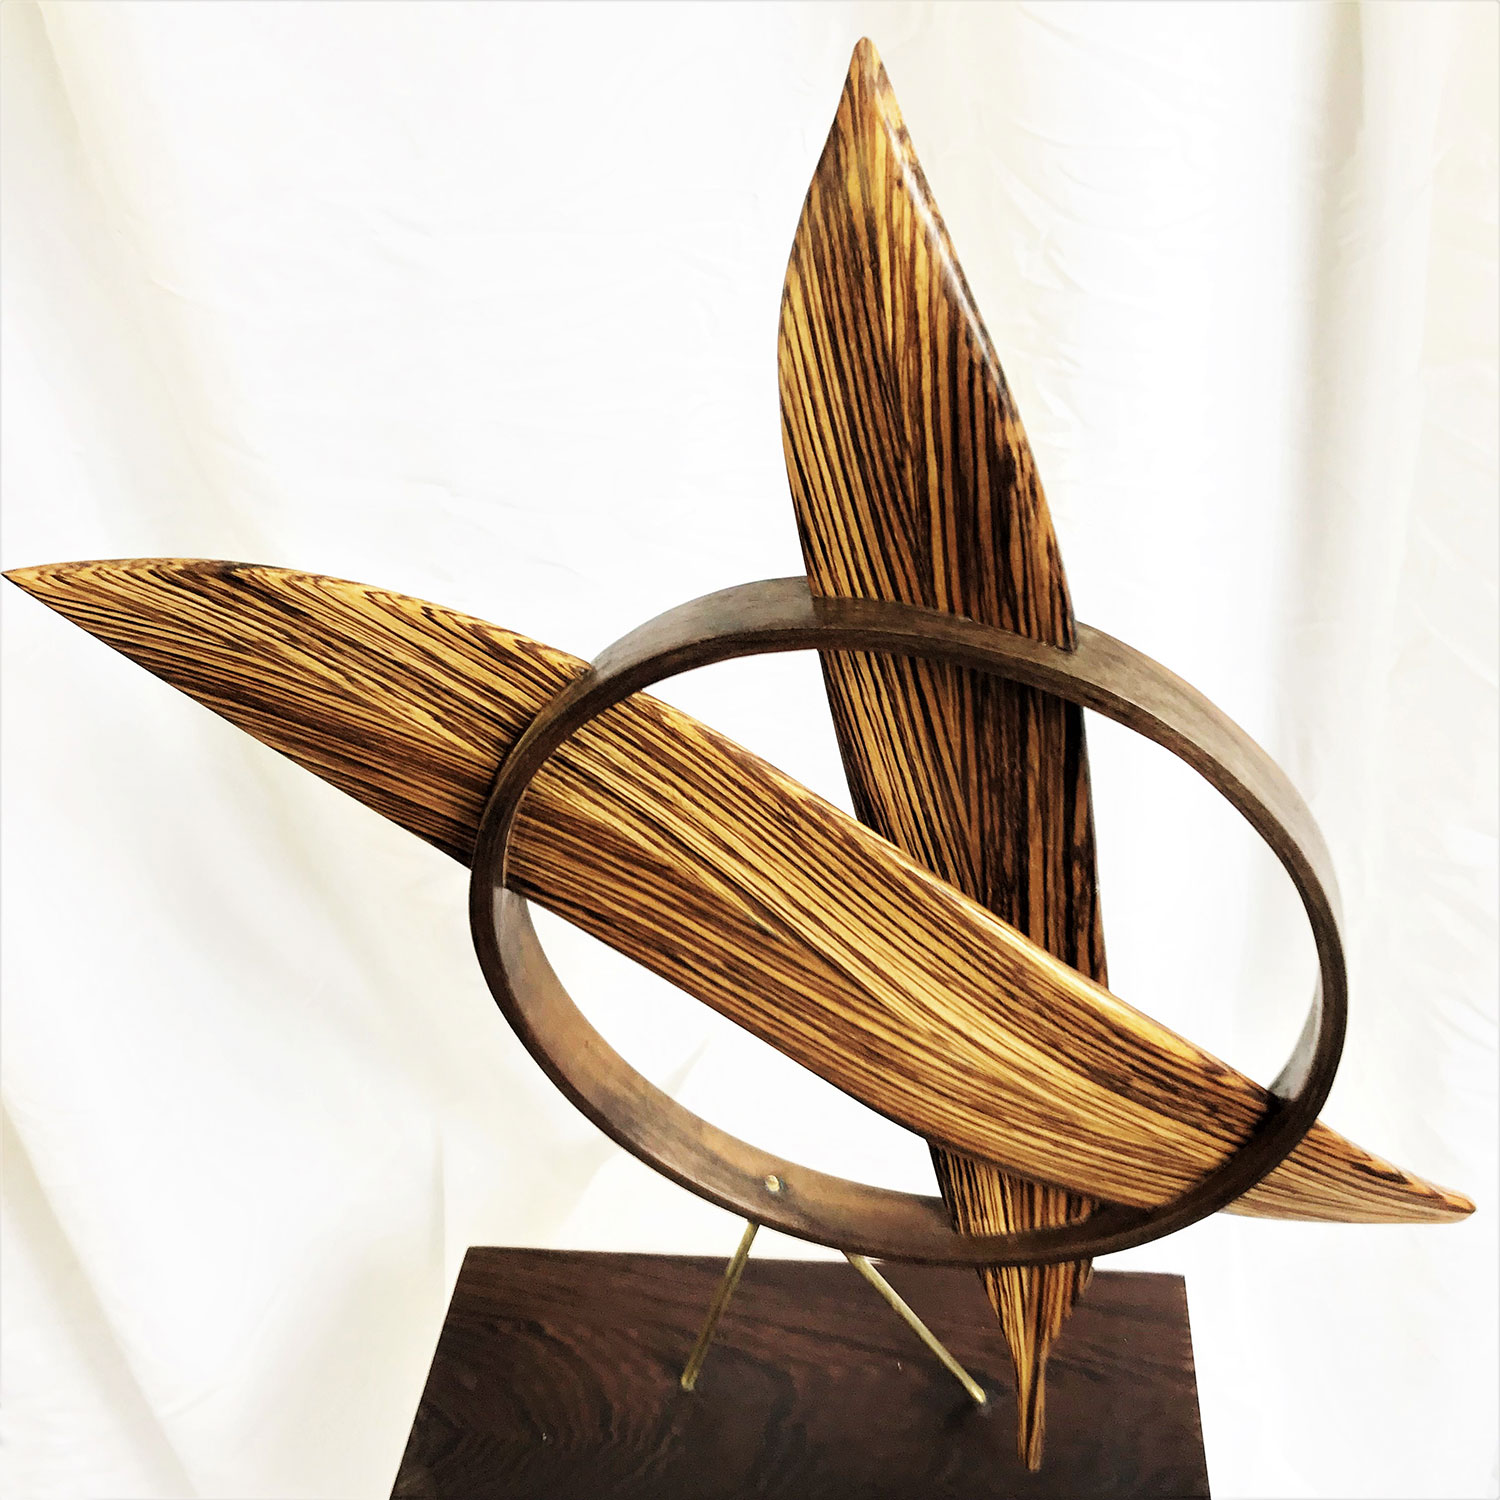 Wood-Metal Sculpture by Mike Laflin